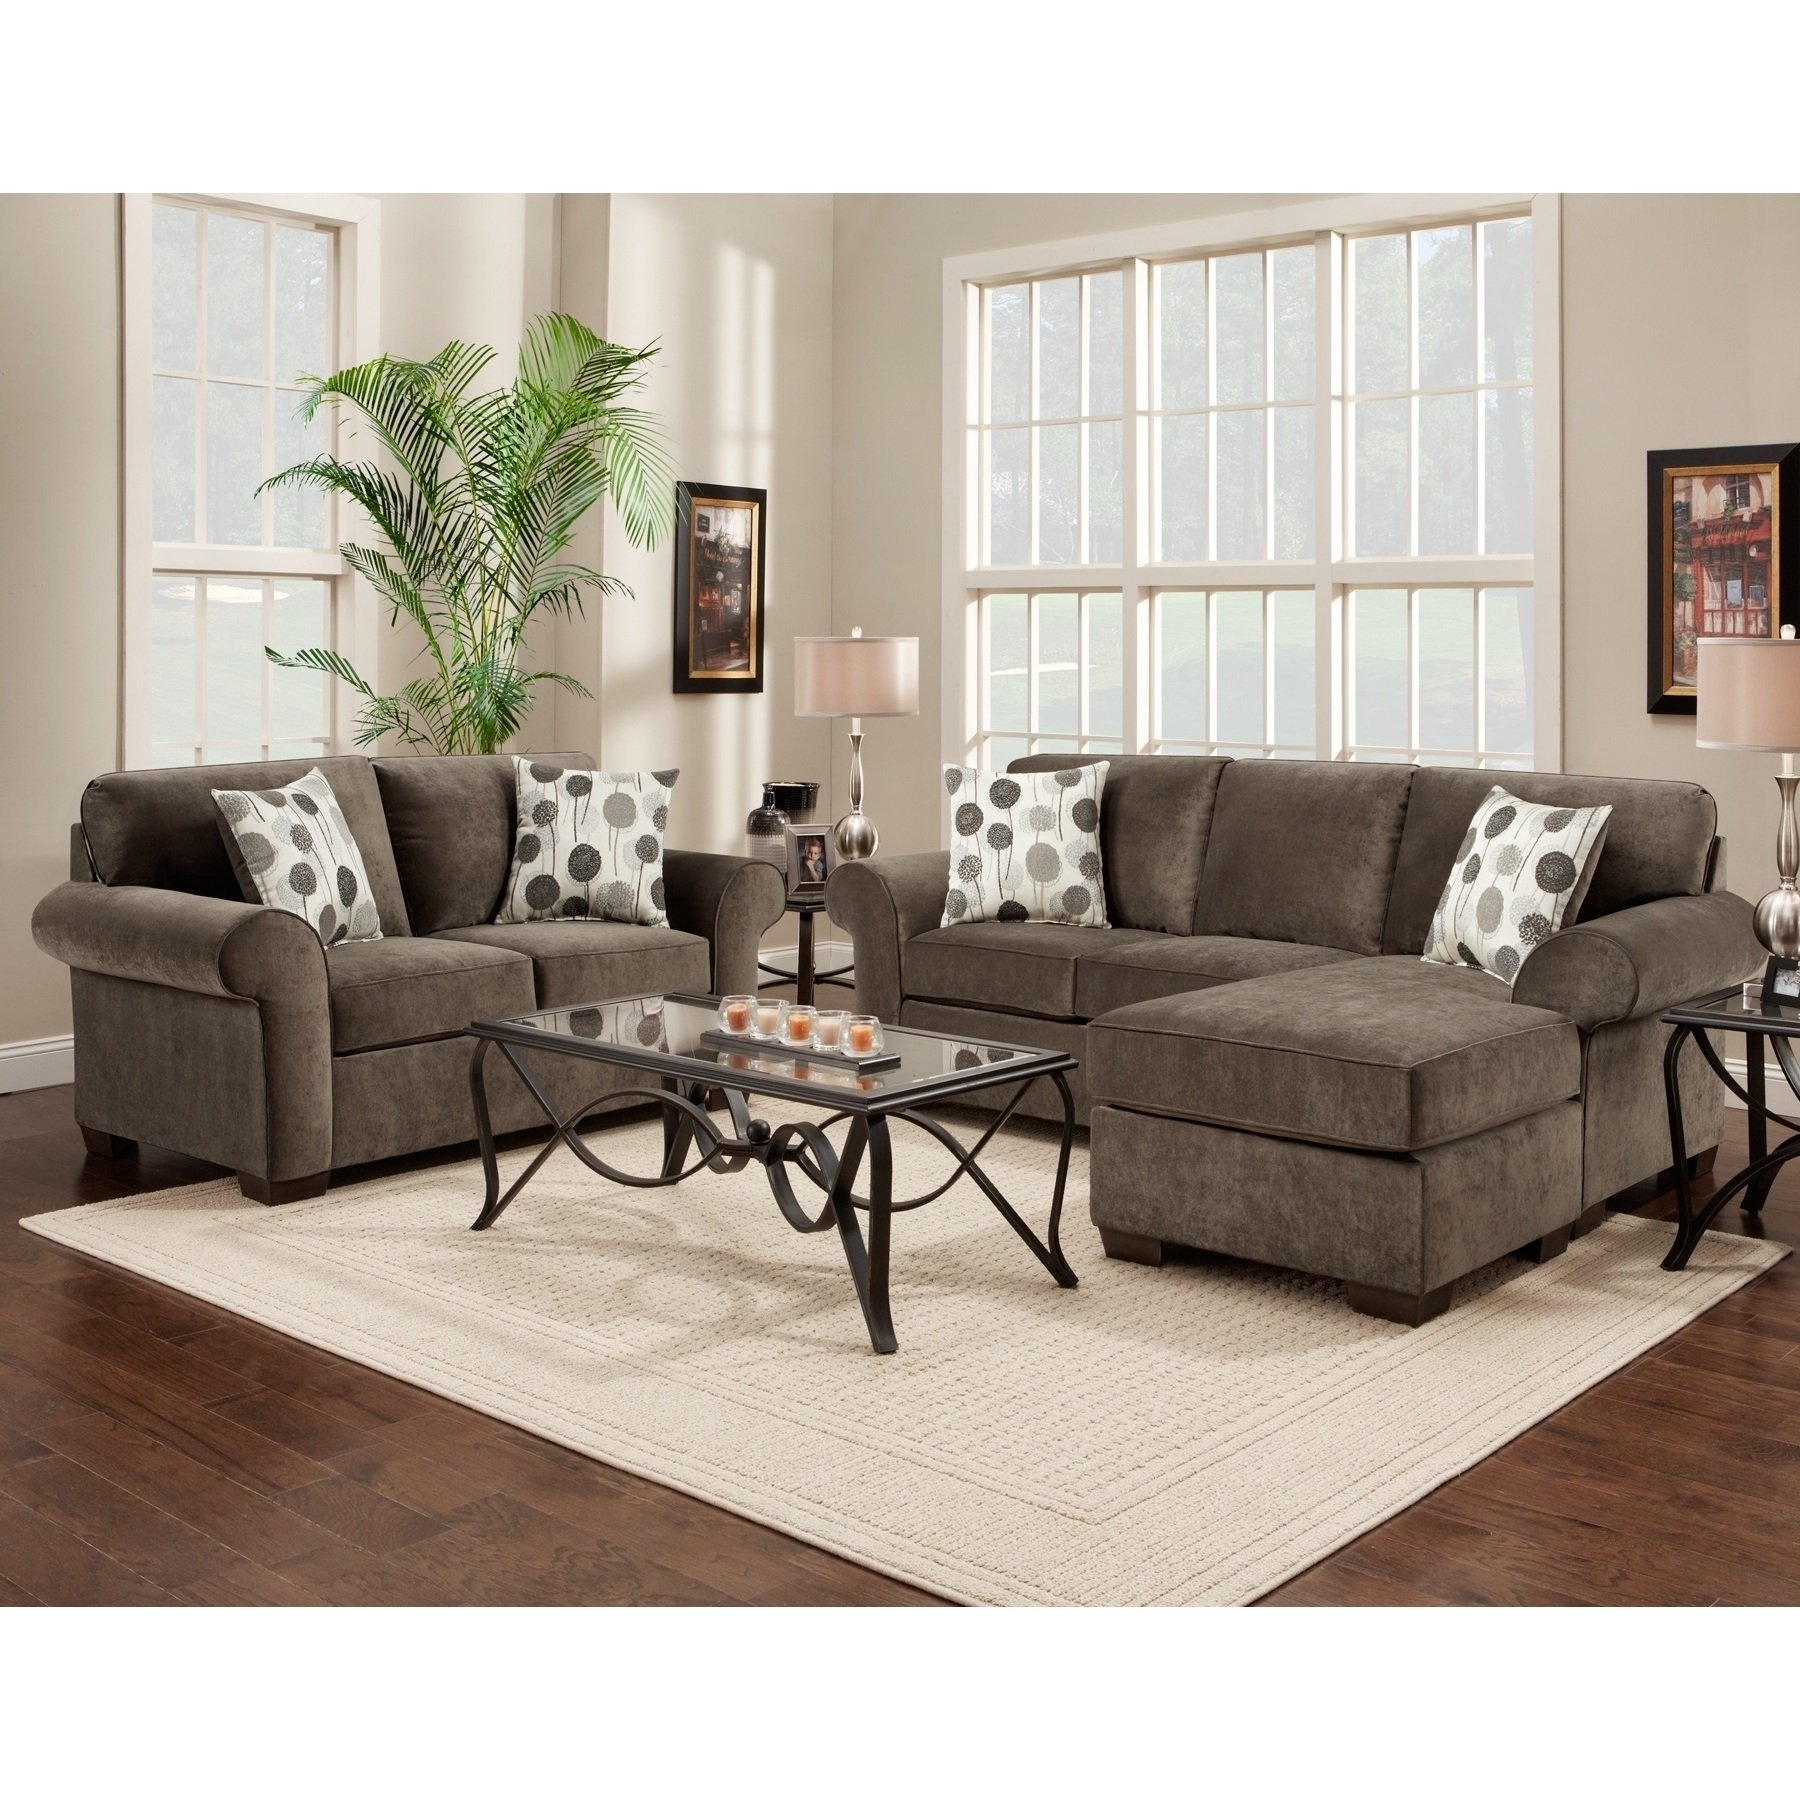 Loveseat Sectional | Whitecraftwoodard Mona Wicker Right Arm With Regard To Declan 3 Piece Power Reclining Sectionals With Right Facing Console Loveseat (View 10 of 25)